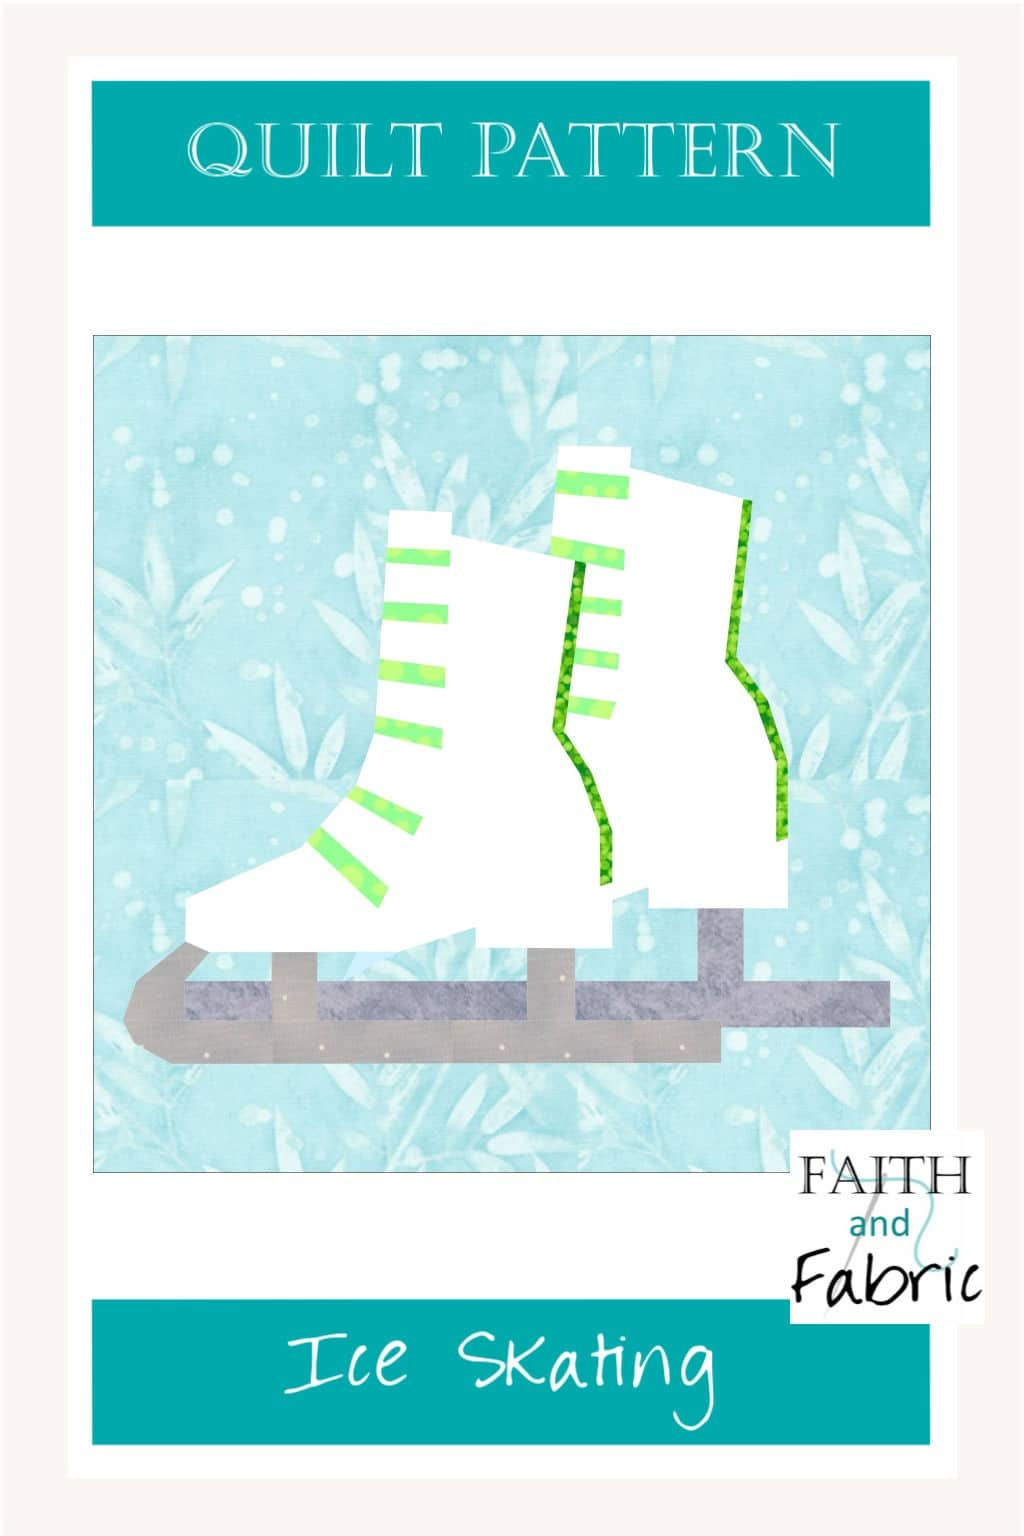 This quilt is ready for winter! With ice skates made either for the ice rink or for a game of ice hockey, your colors will transform them to whatever you like! Created by Faith and Fabric